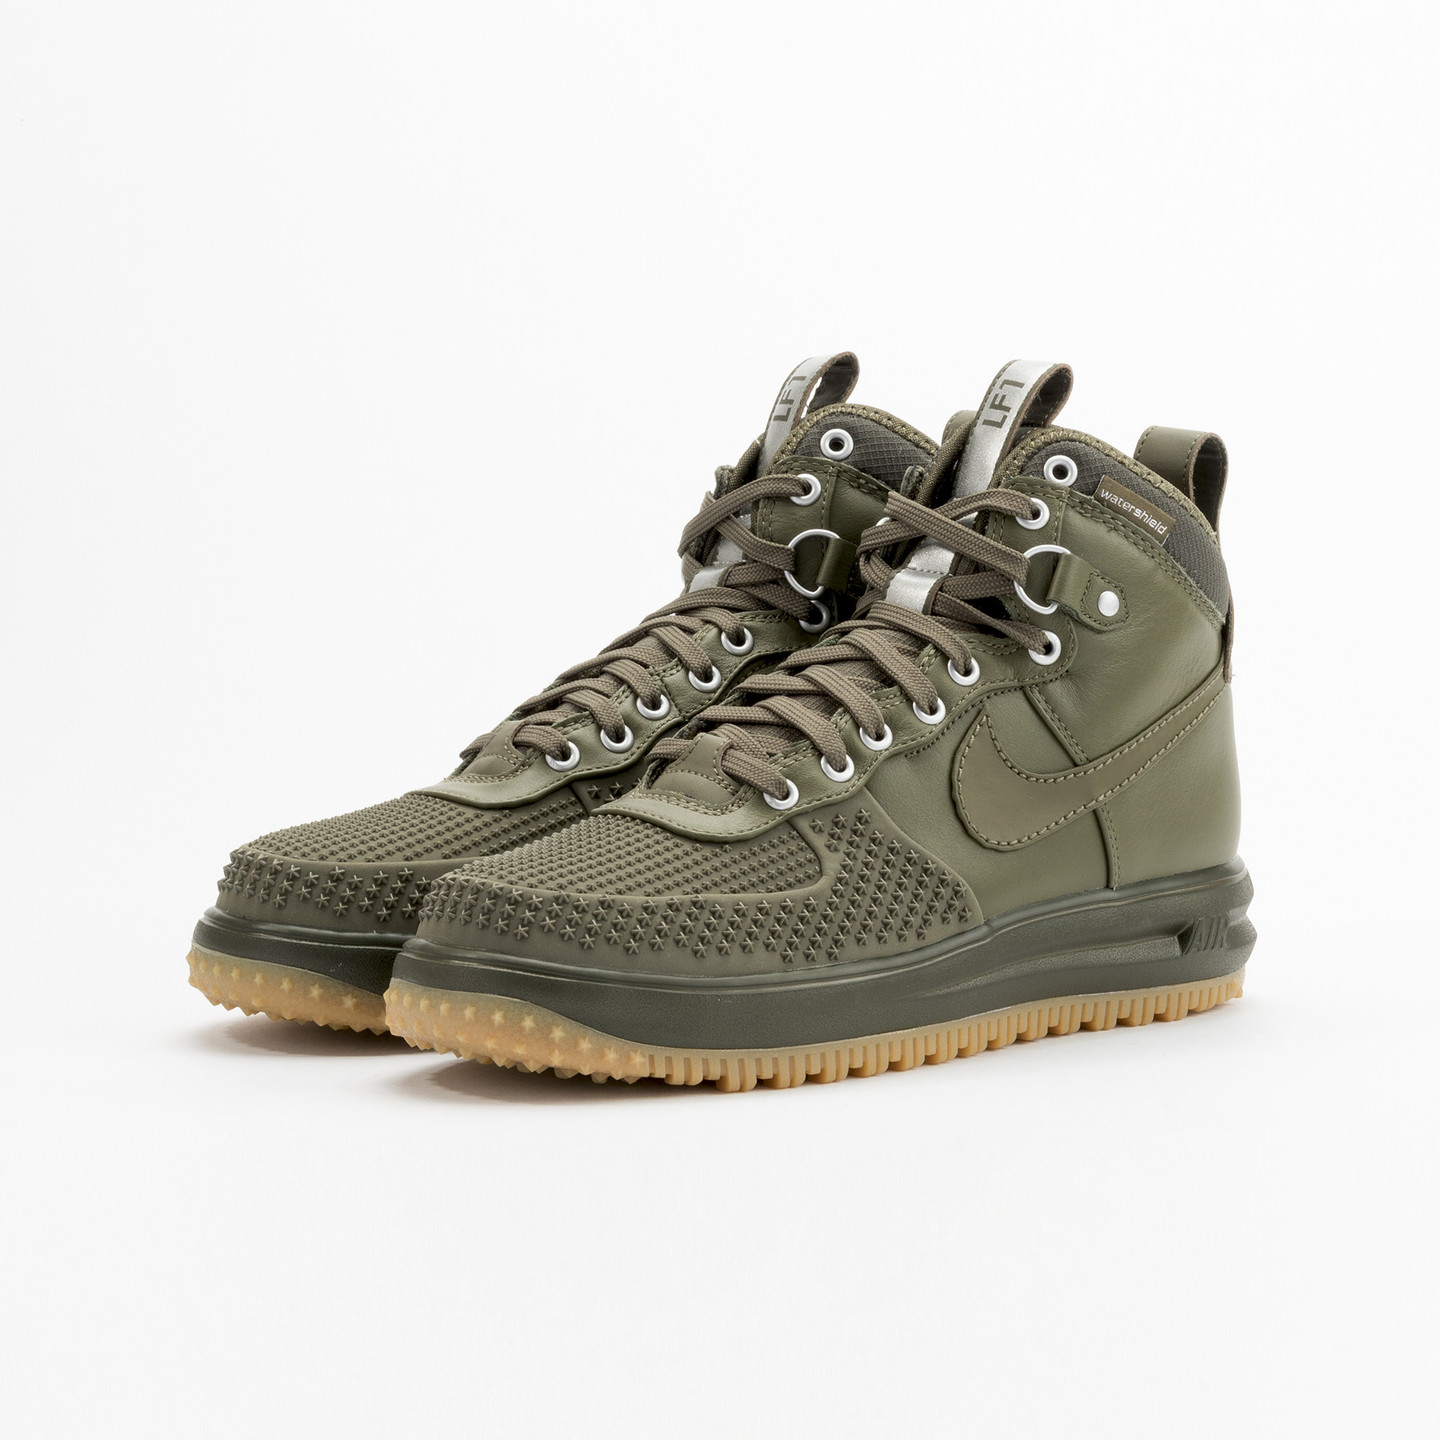 Nike Lunar Force 1 Duckboot Medium Olive / White 805899-201-43